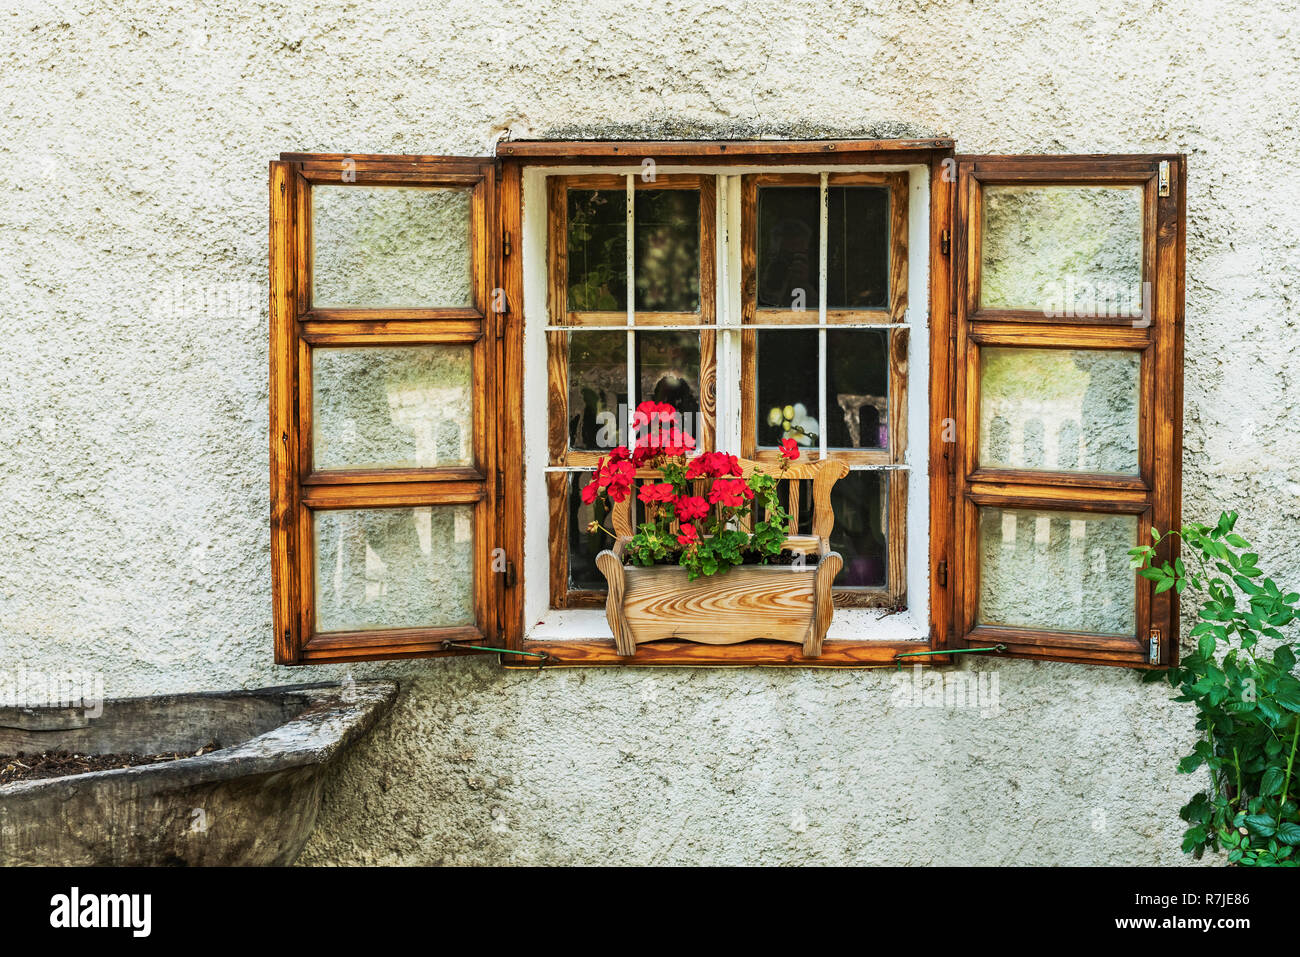 Wooden window with flower box and red geraniums on a house in Tihany, Veszprem county, Central Transdanubia, Hungary, Europe - Stock Image